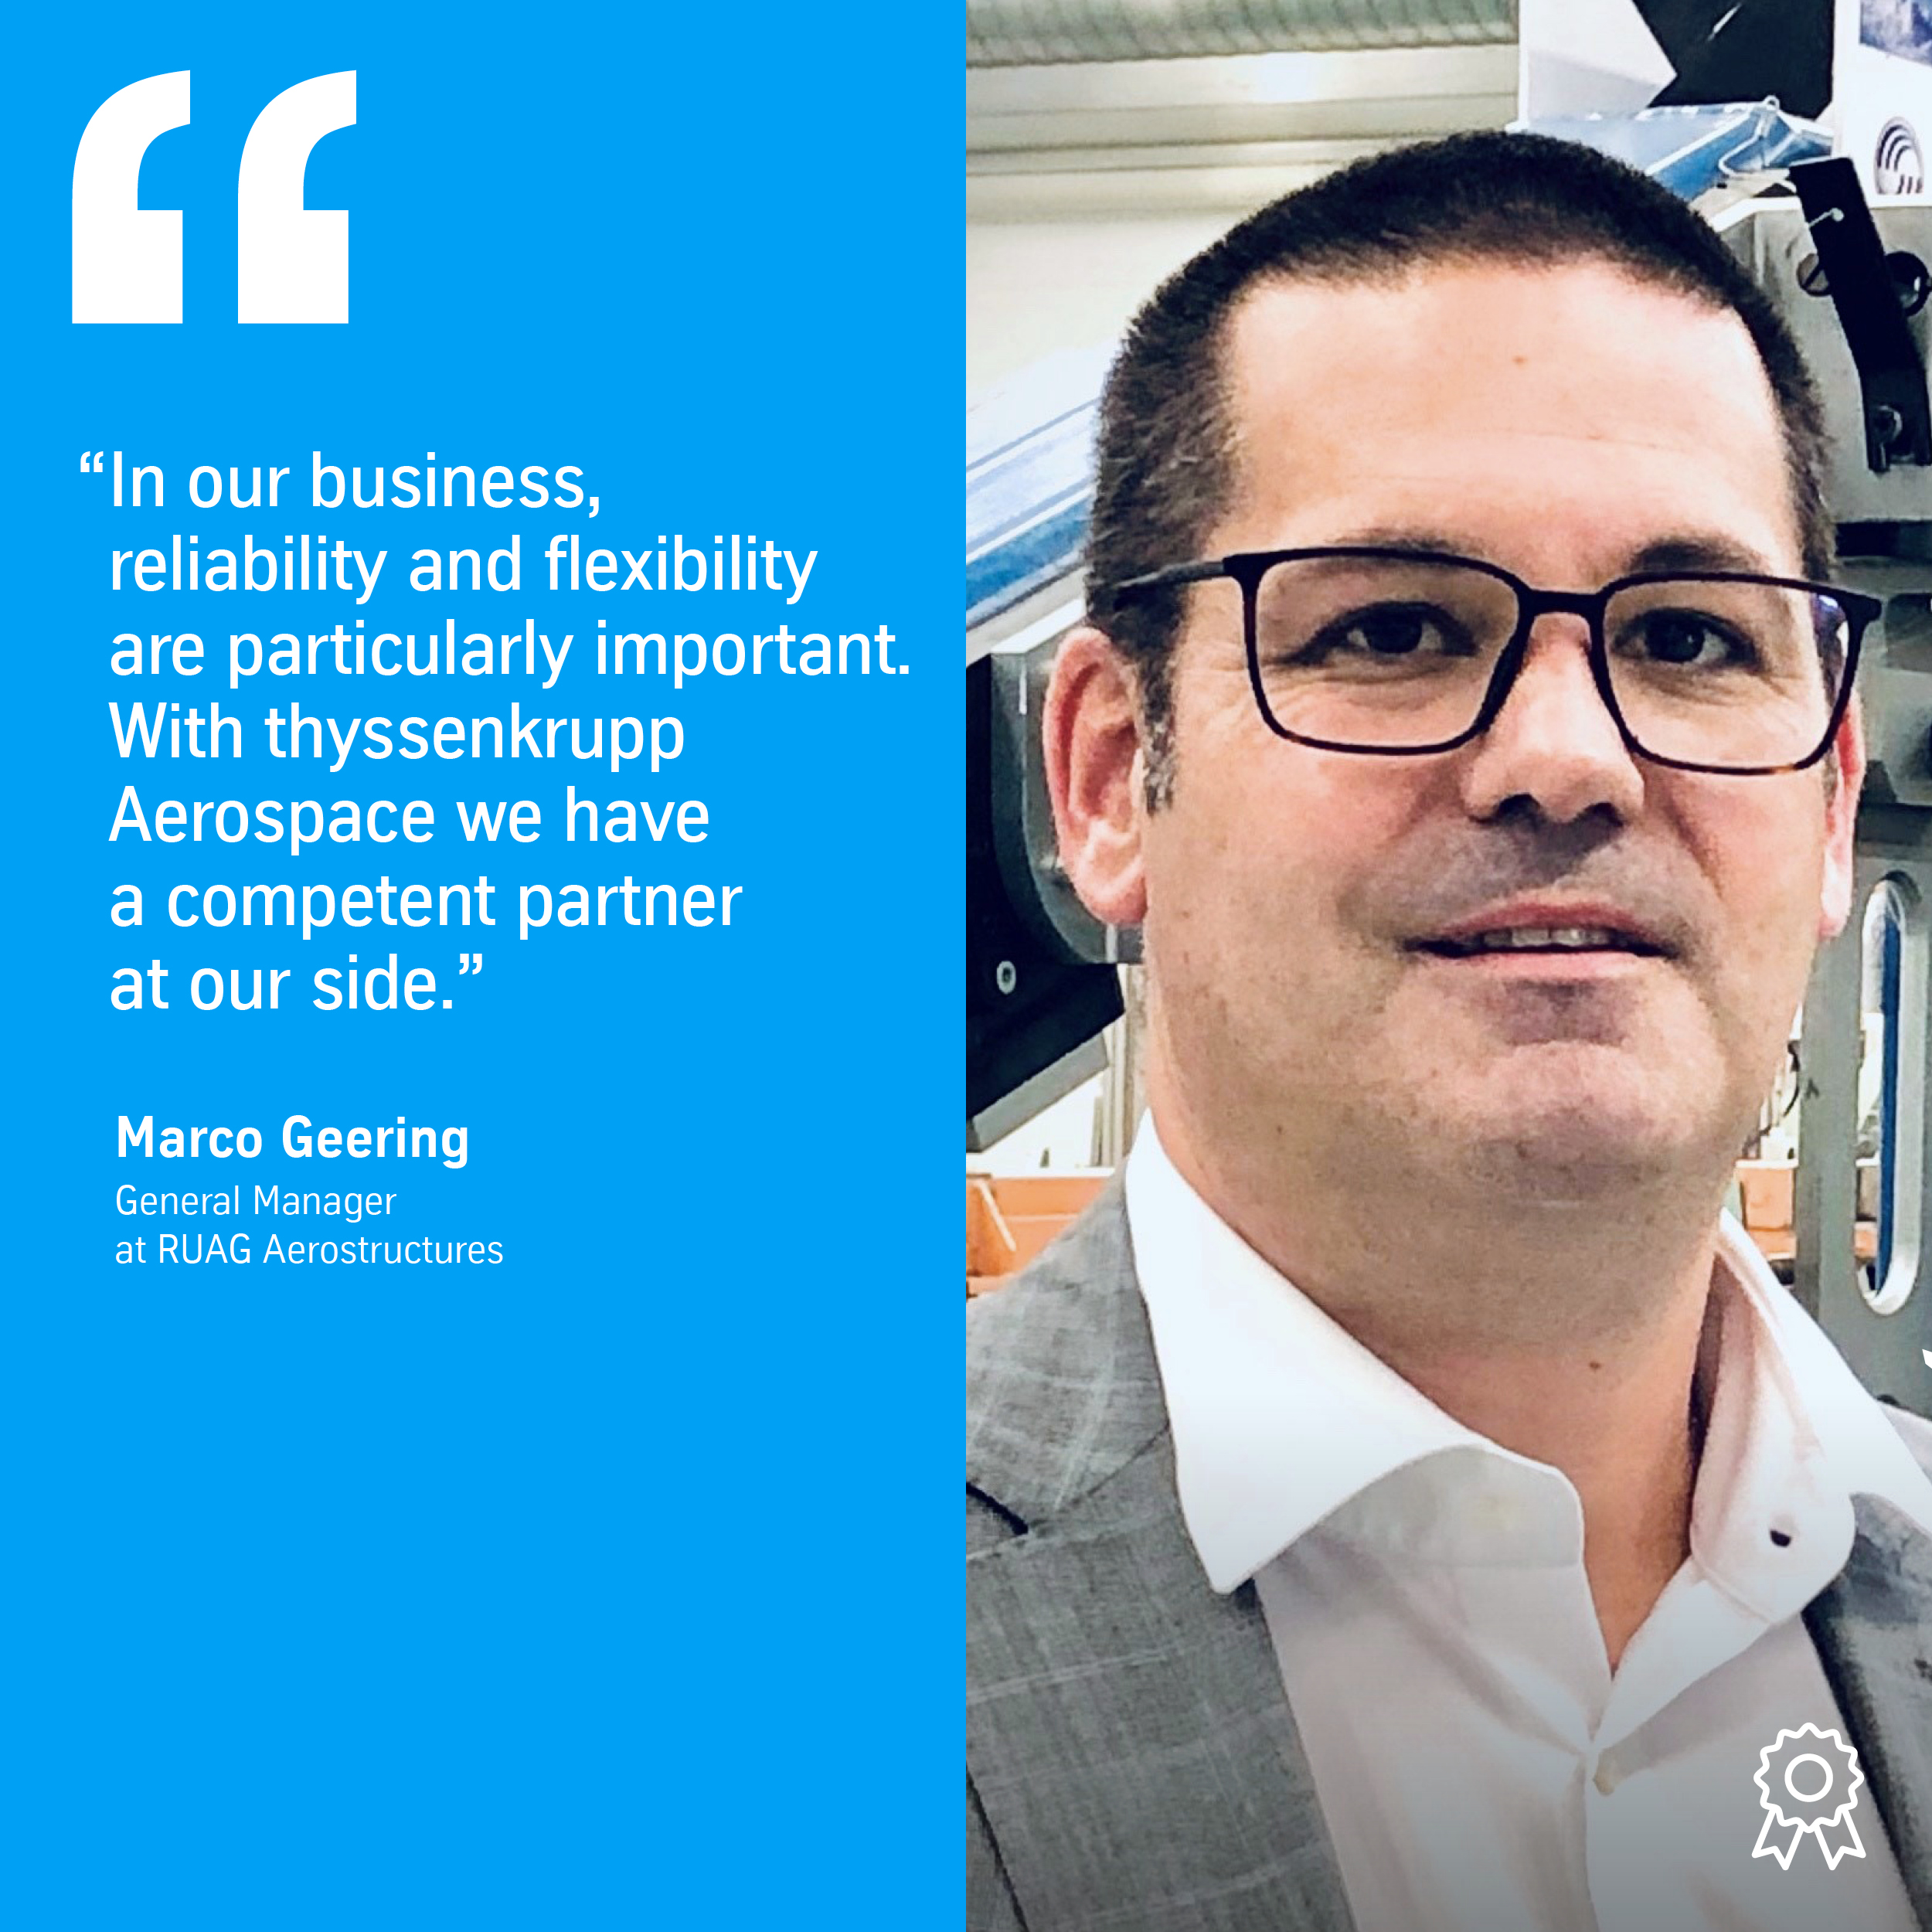 Marco Geering, General Manager at RUAG Aerostructures